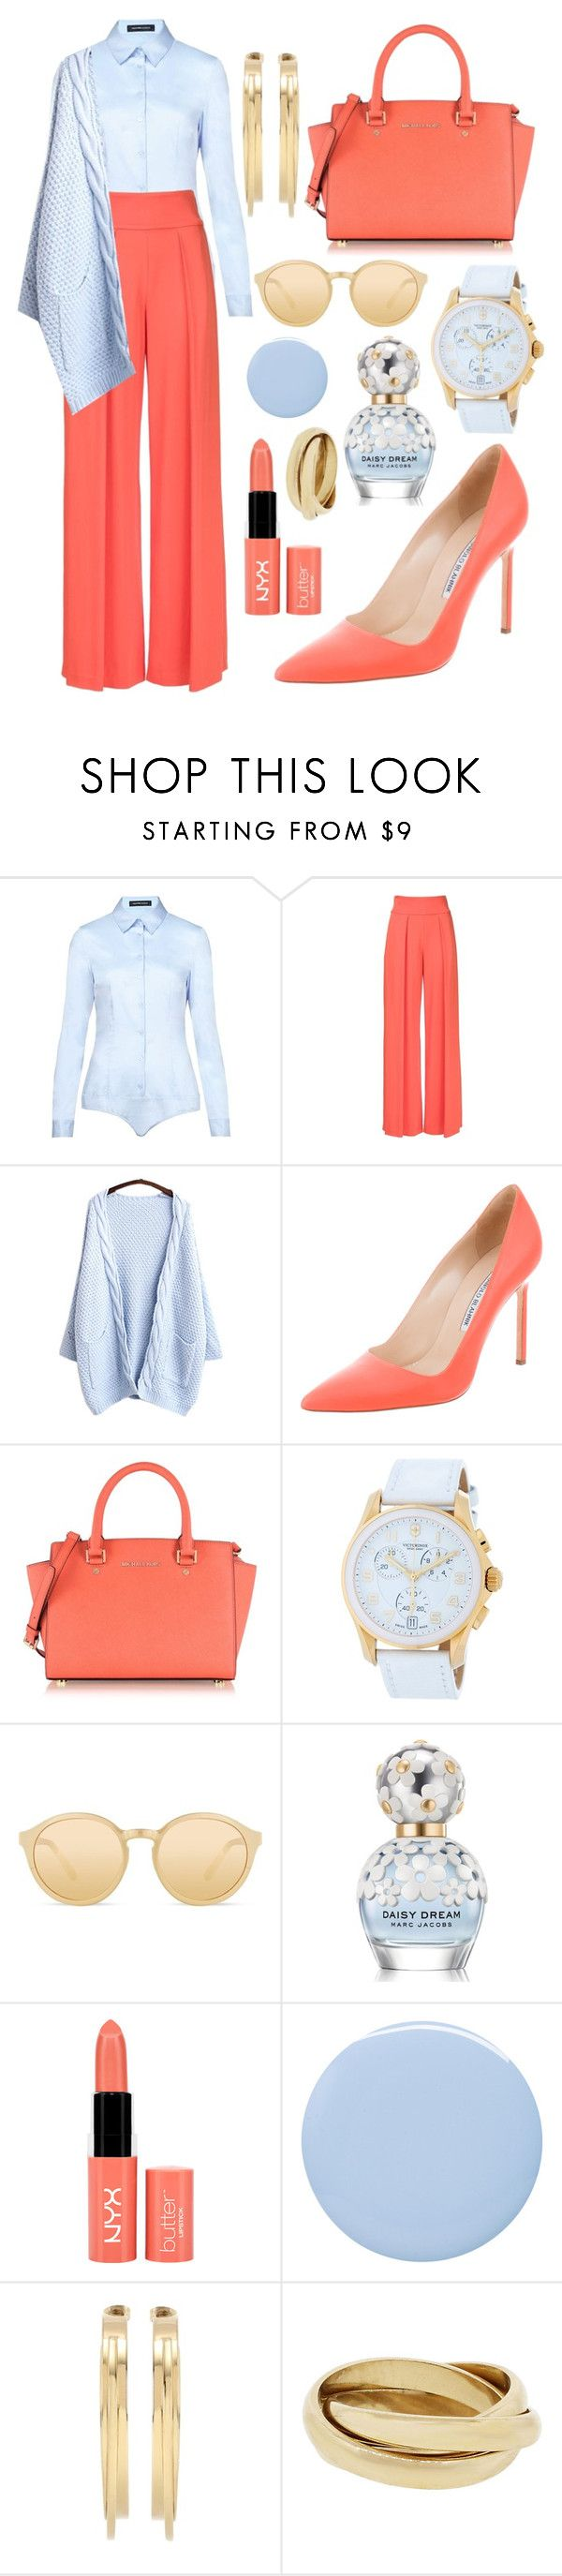 With style... by sanela-enter ❤ liked on Polyvore featuring Hallhuber, Nicole Miller, Manolo Blahnik, Michael Kors, Victorinox Swiss Army, Linda Farrow, Marc Jacobs, NYX, Deborah Lippmann and By Malene Birger